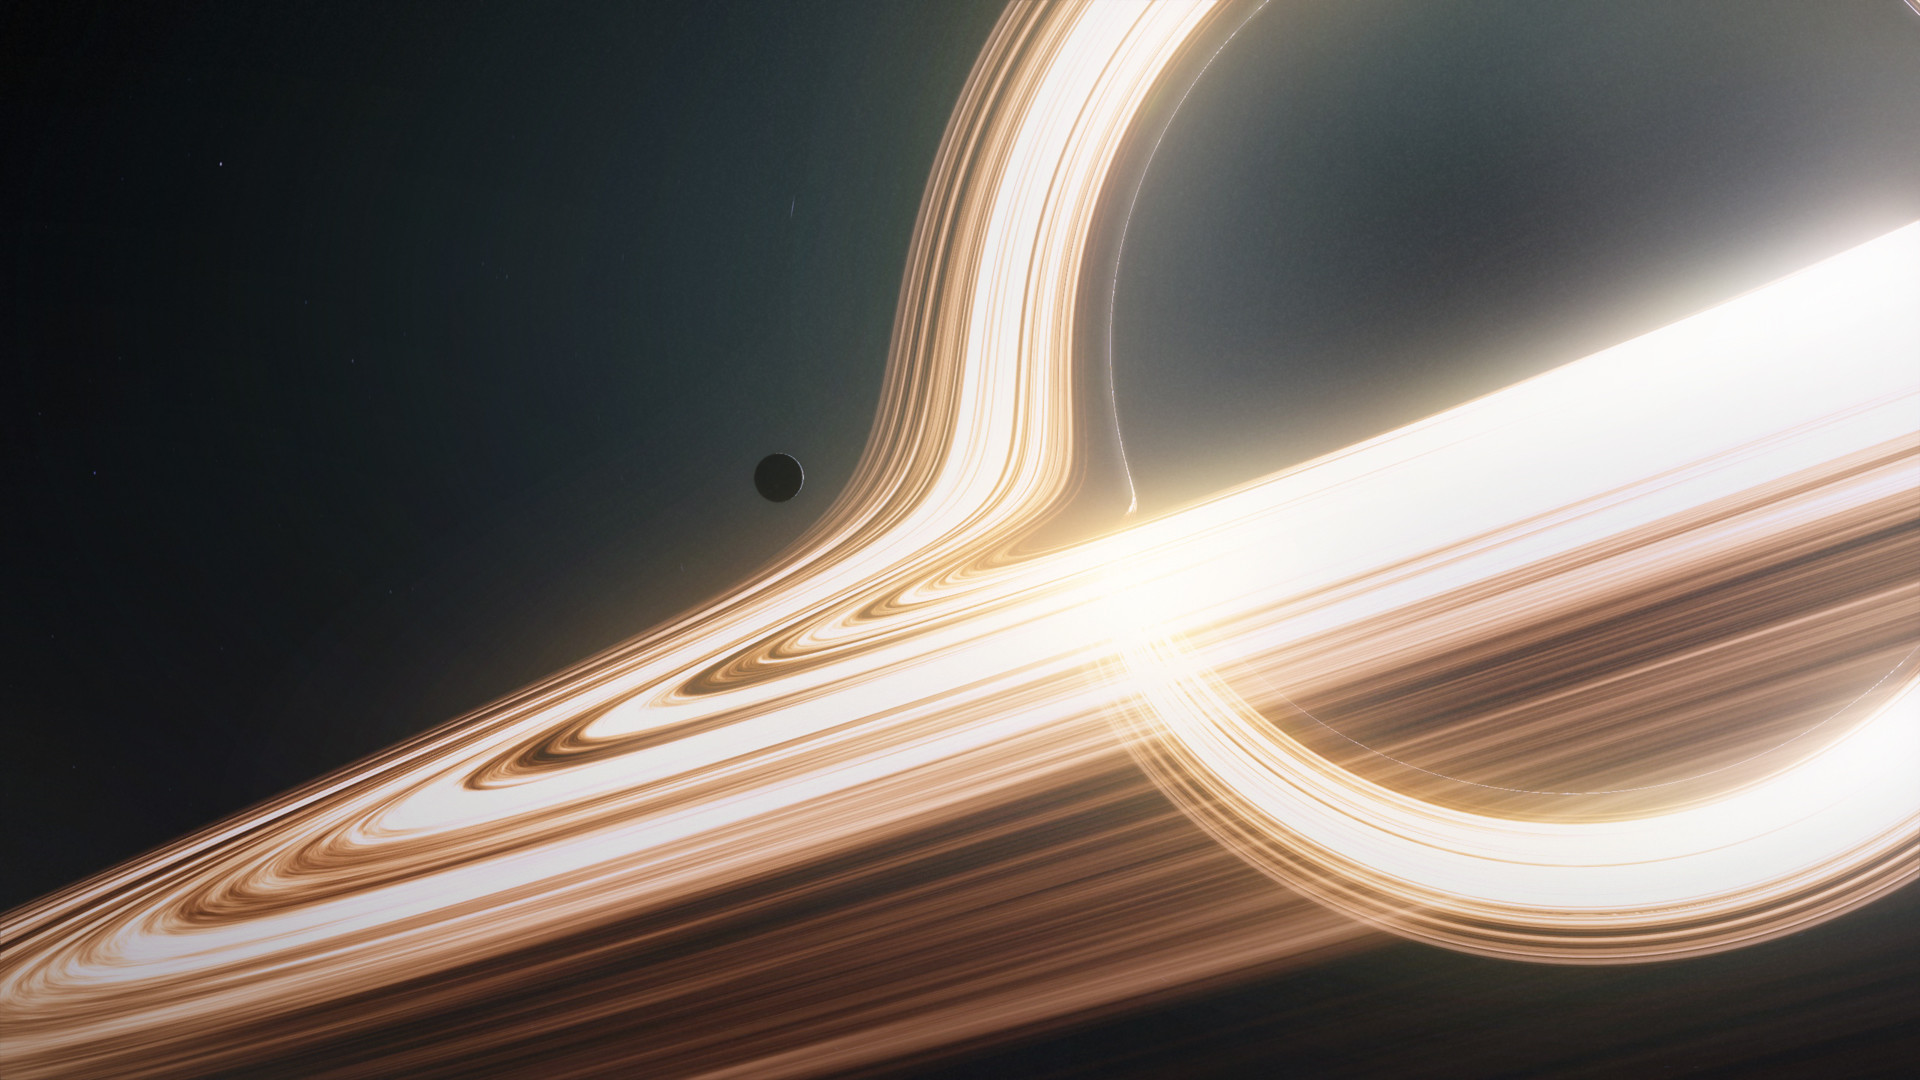 I took the Gargantua image I made a few days ago and decided to redo the  Photoshop job I did on it. The end result is this: